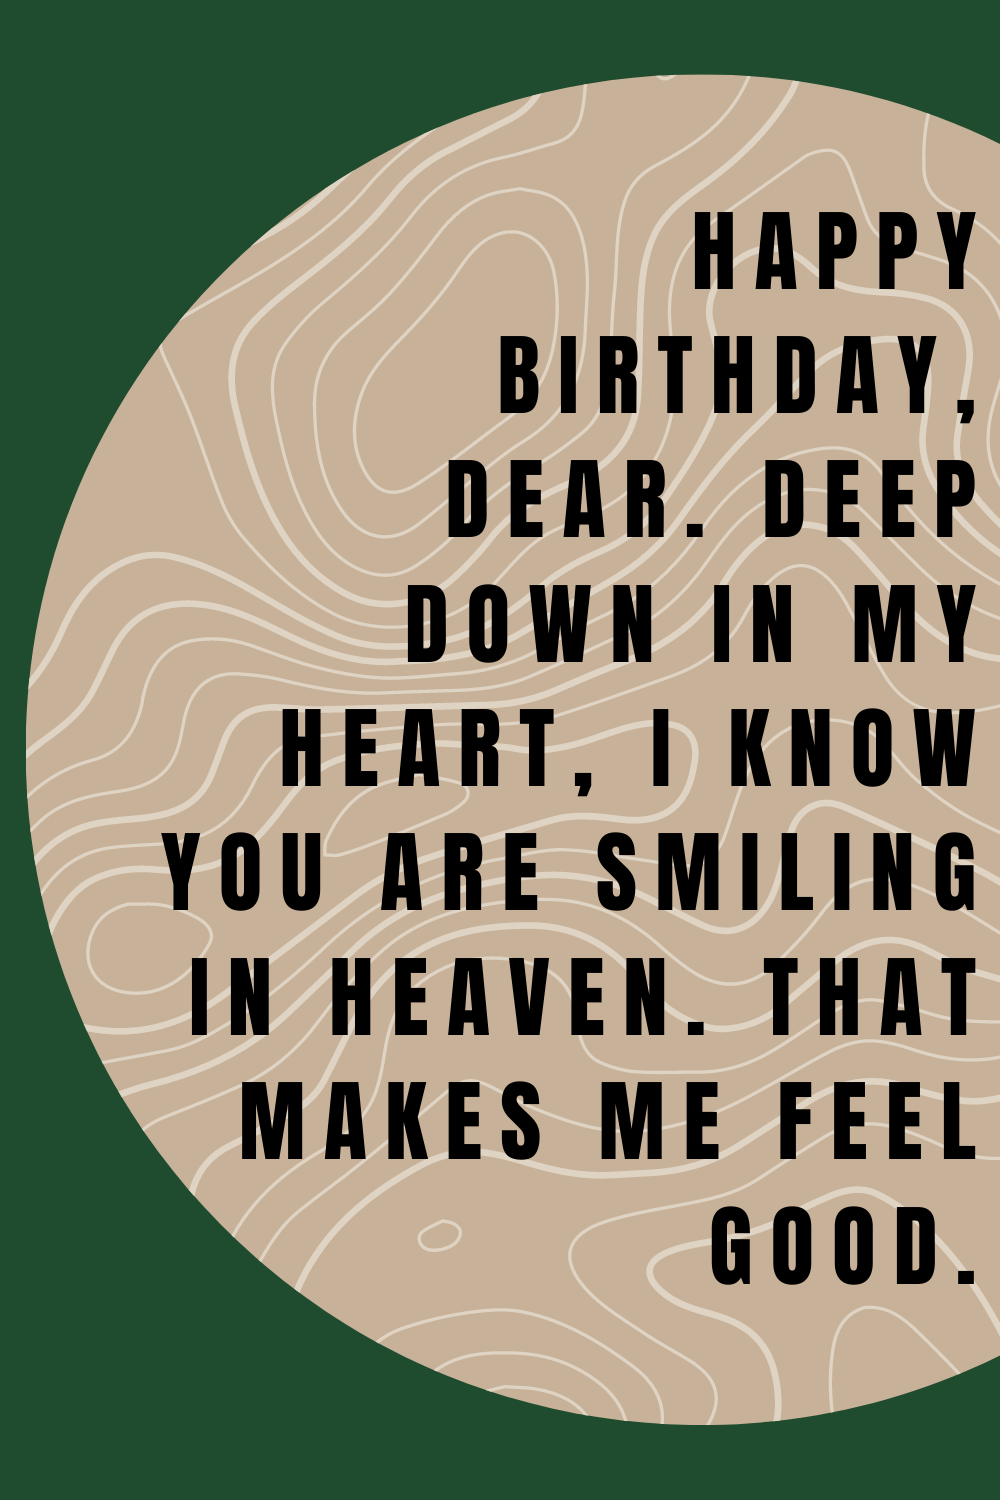 Happy Birthday in Heaven Quotes for Loved Ones